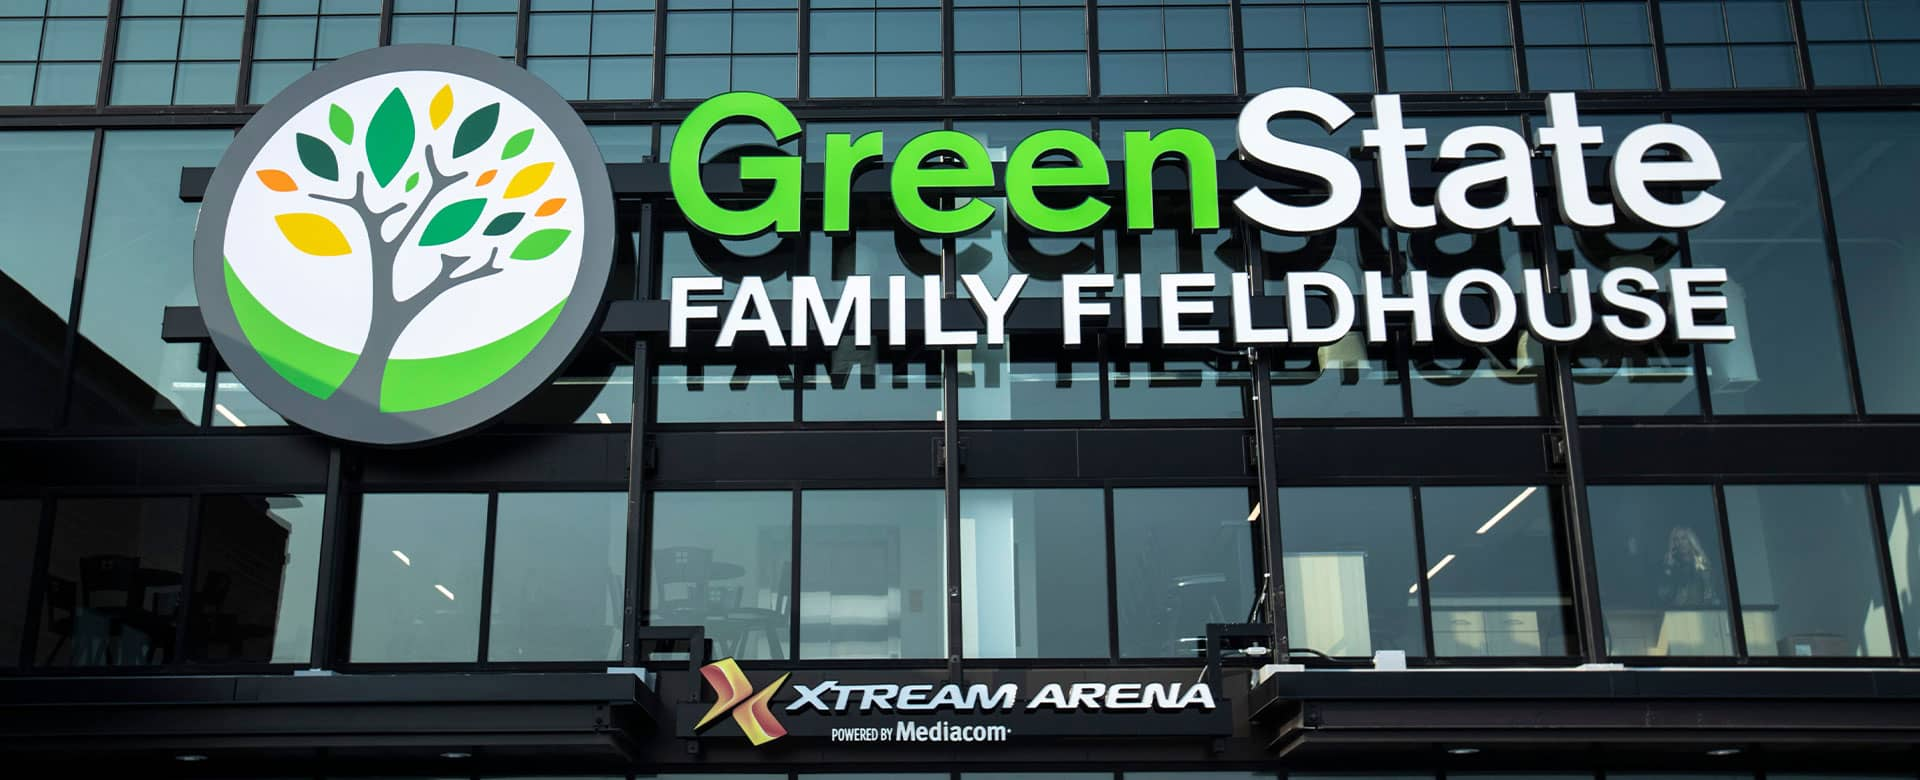 Xtream Arena and GreenState Family Fieldhouse